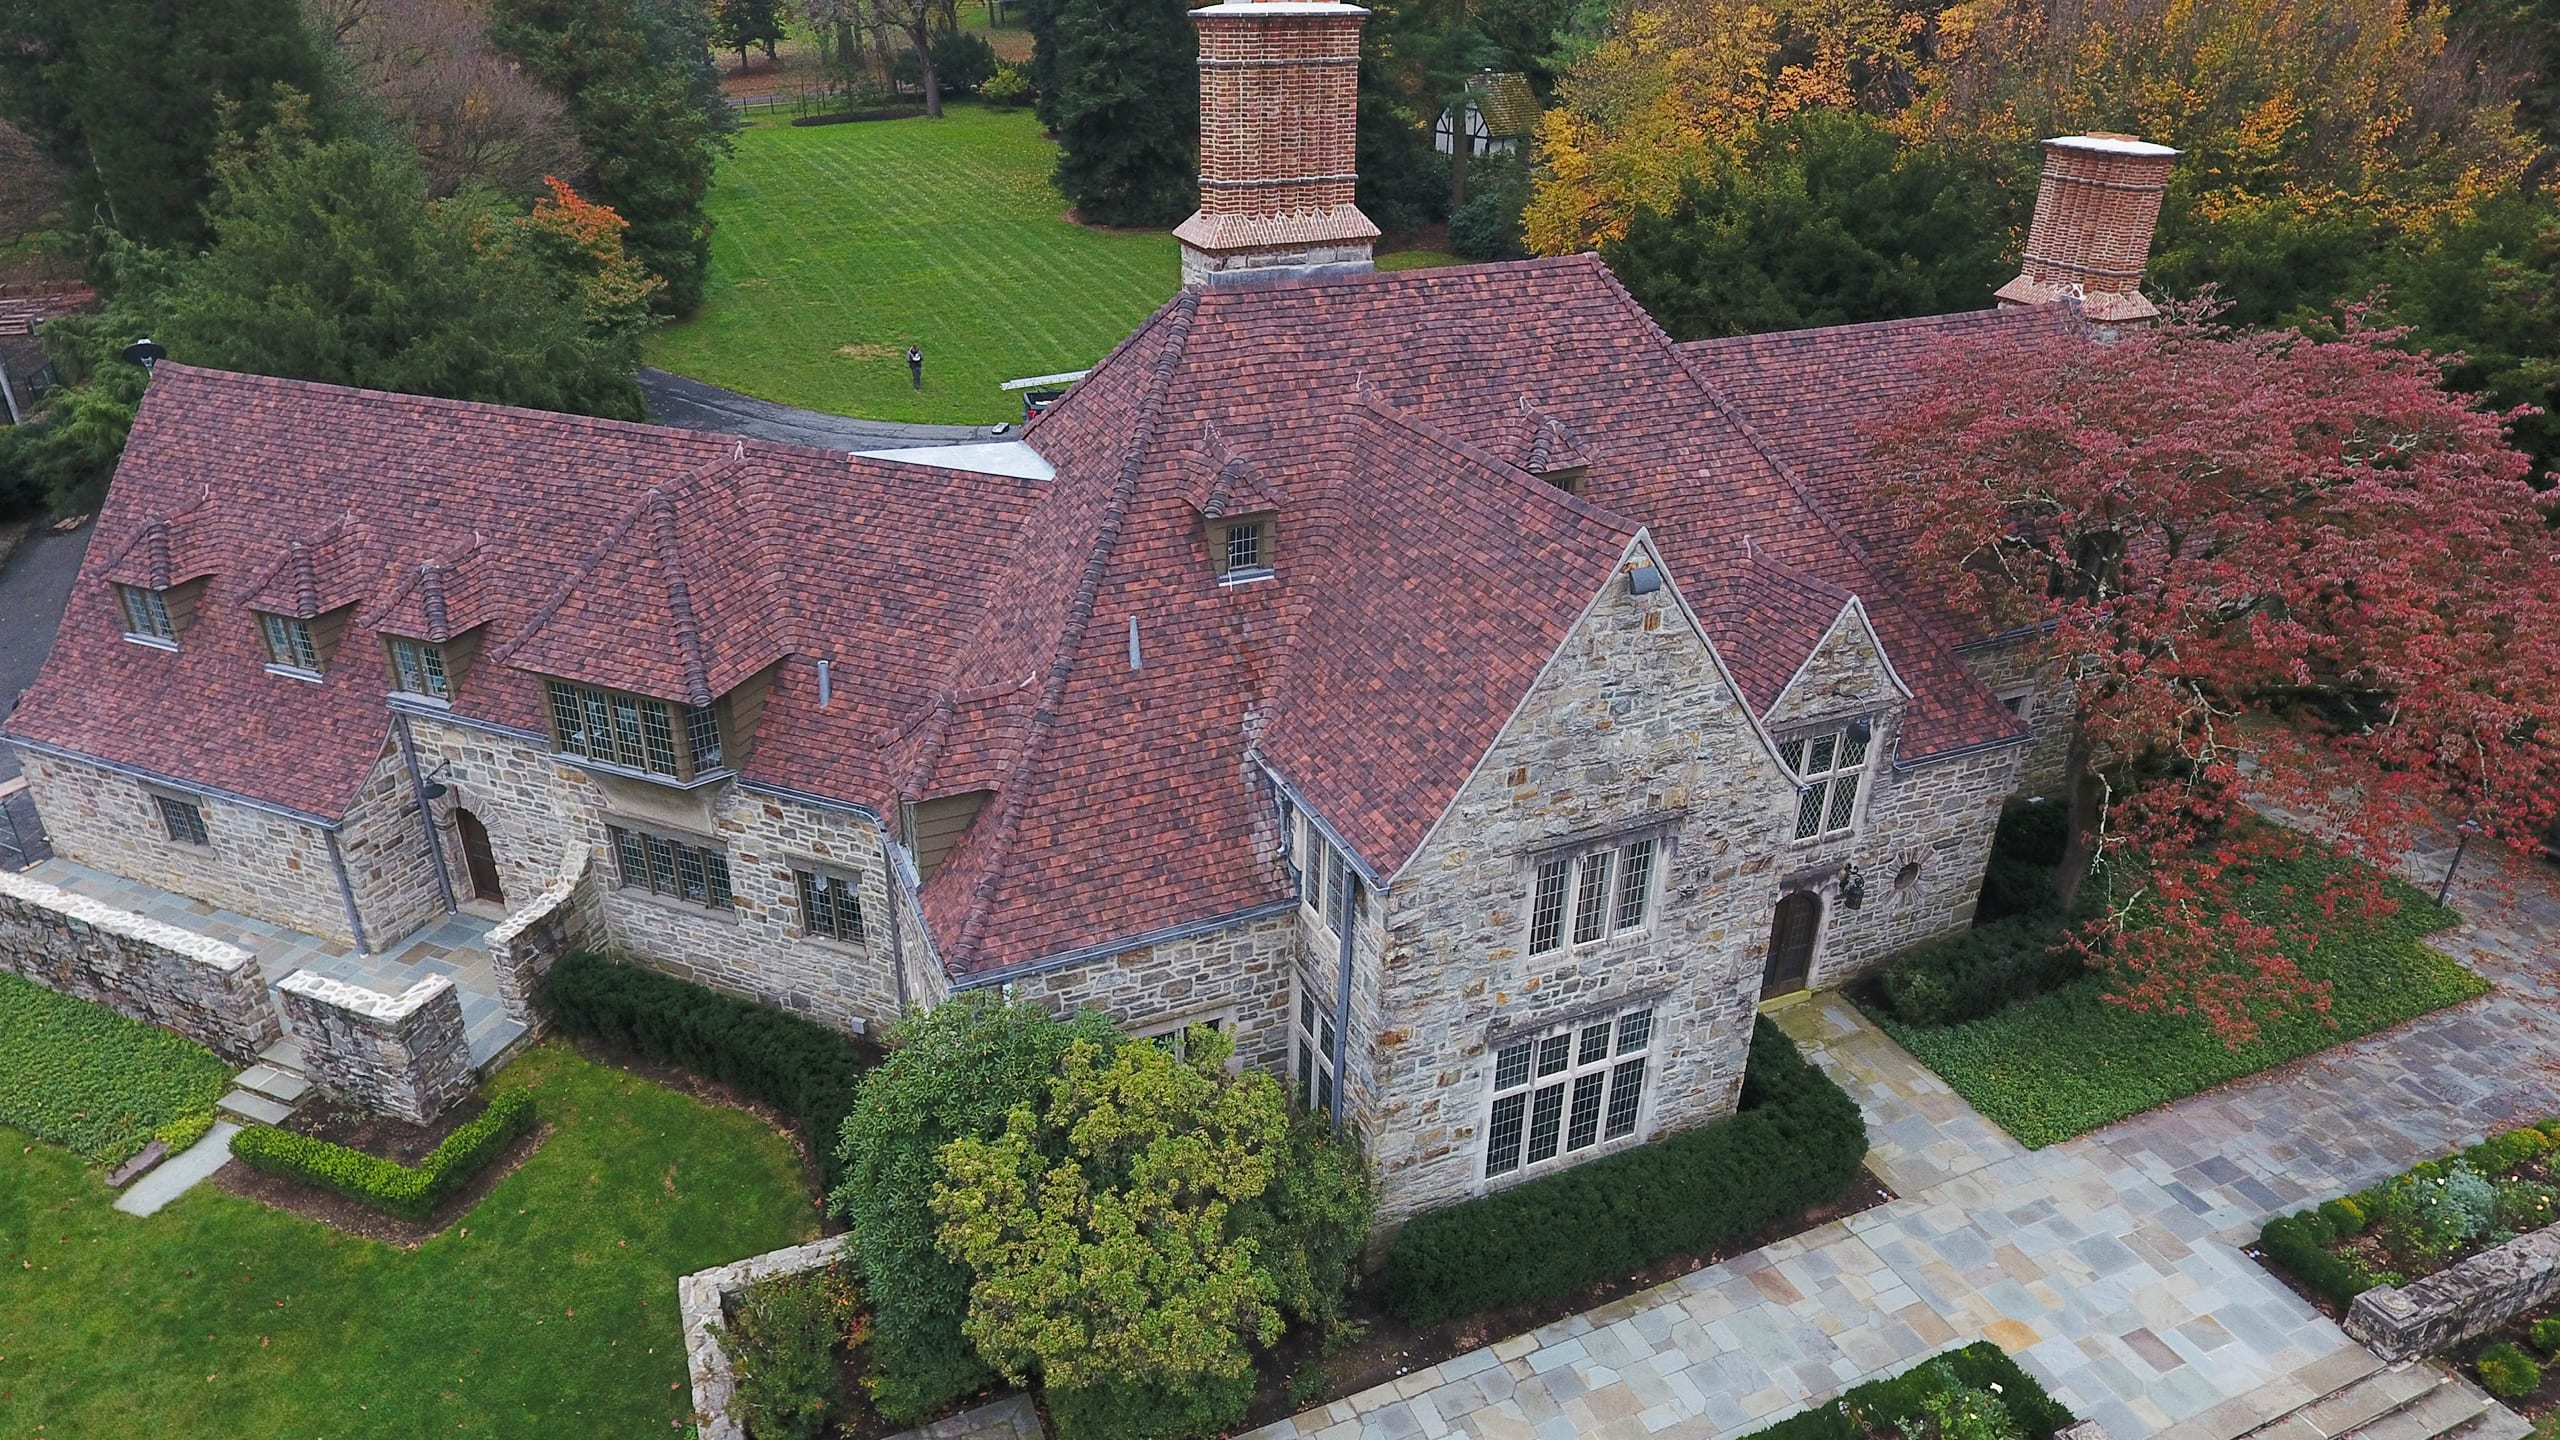 Private Residence - Wyomissing Ludowici Roof Tile